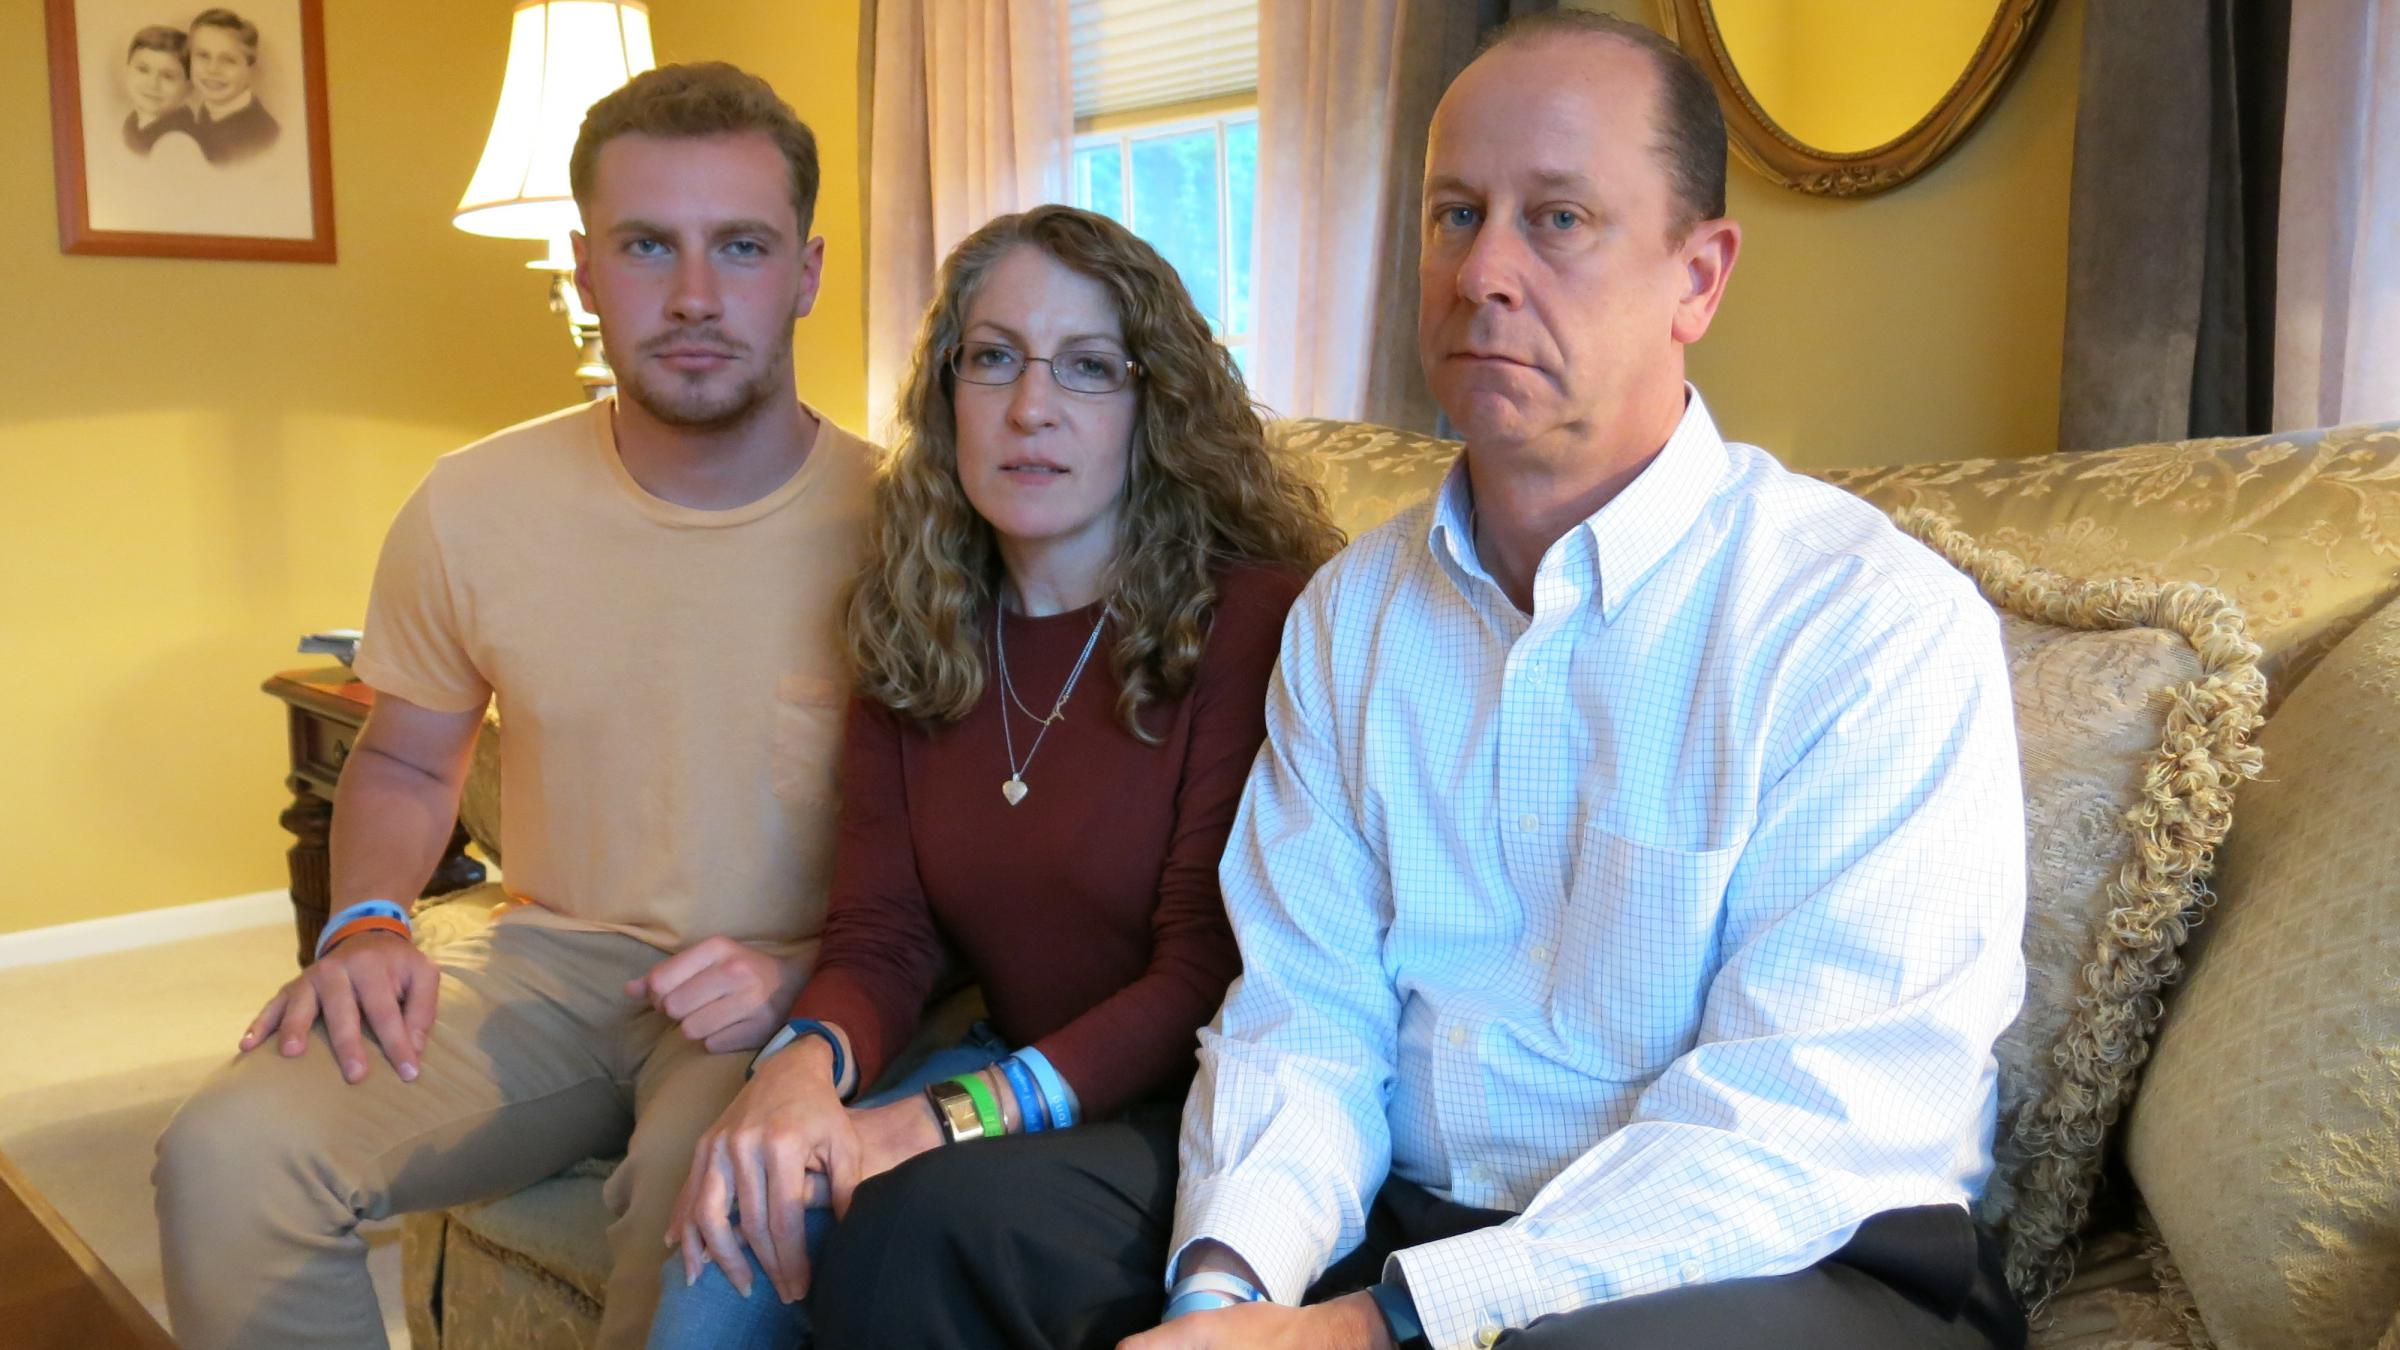 Parents of Penn State Student Hazed to Death